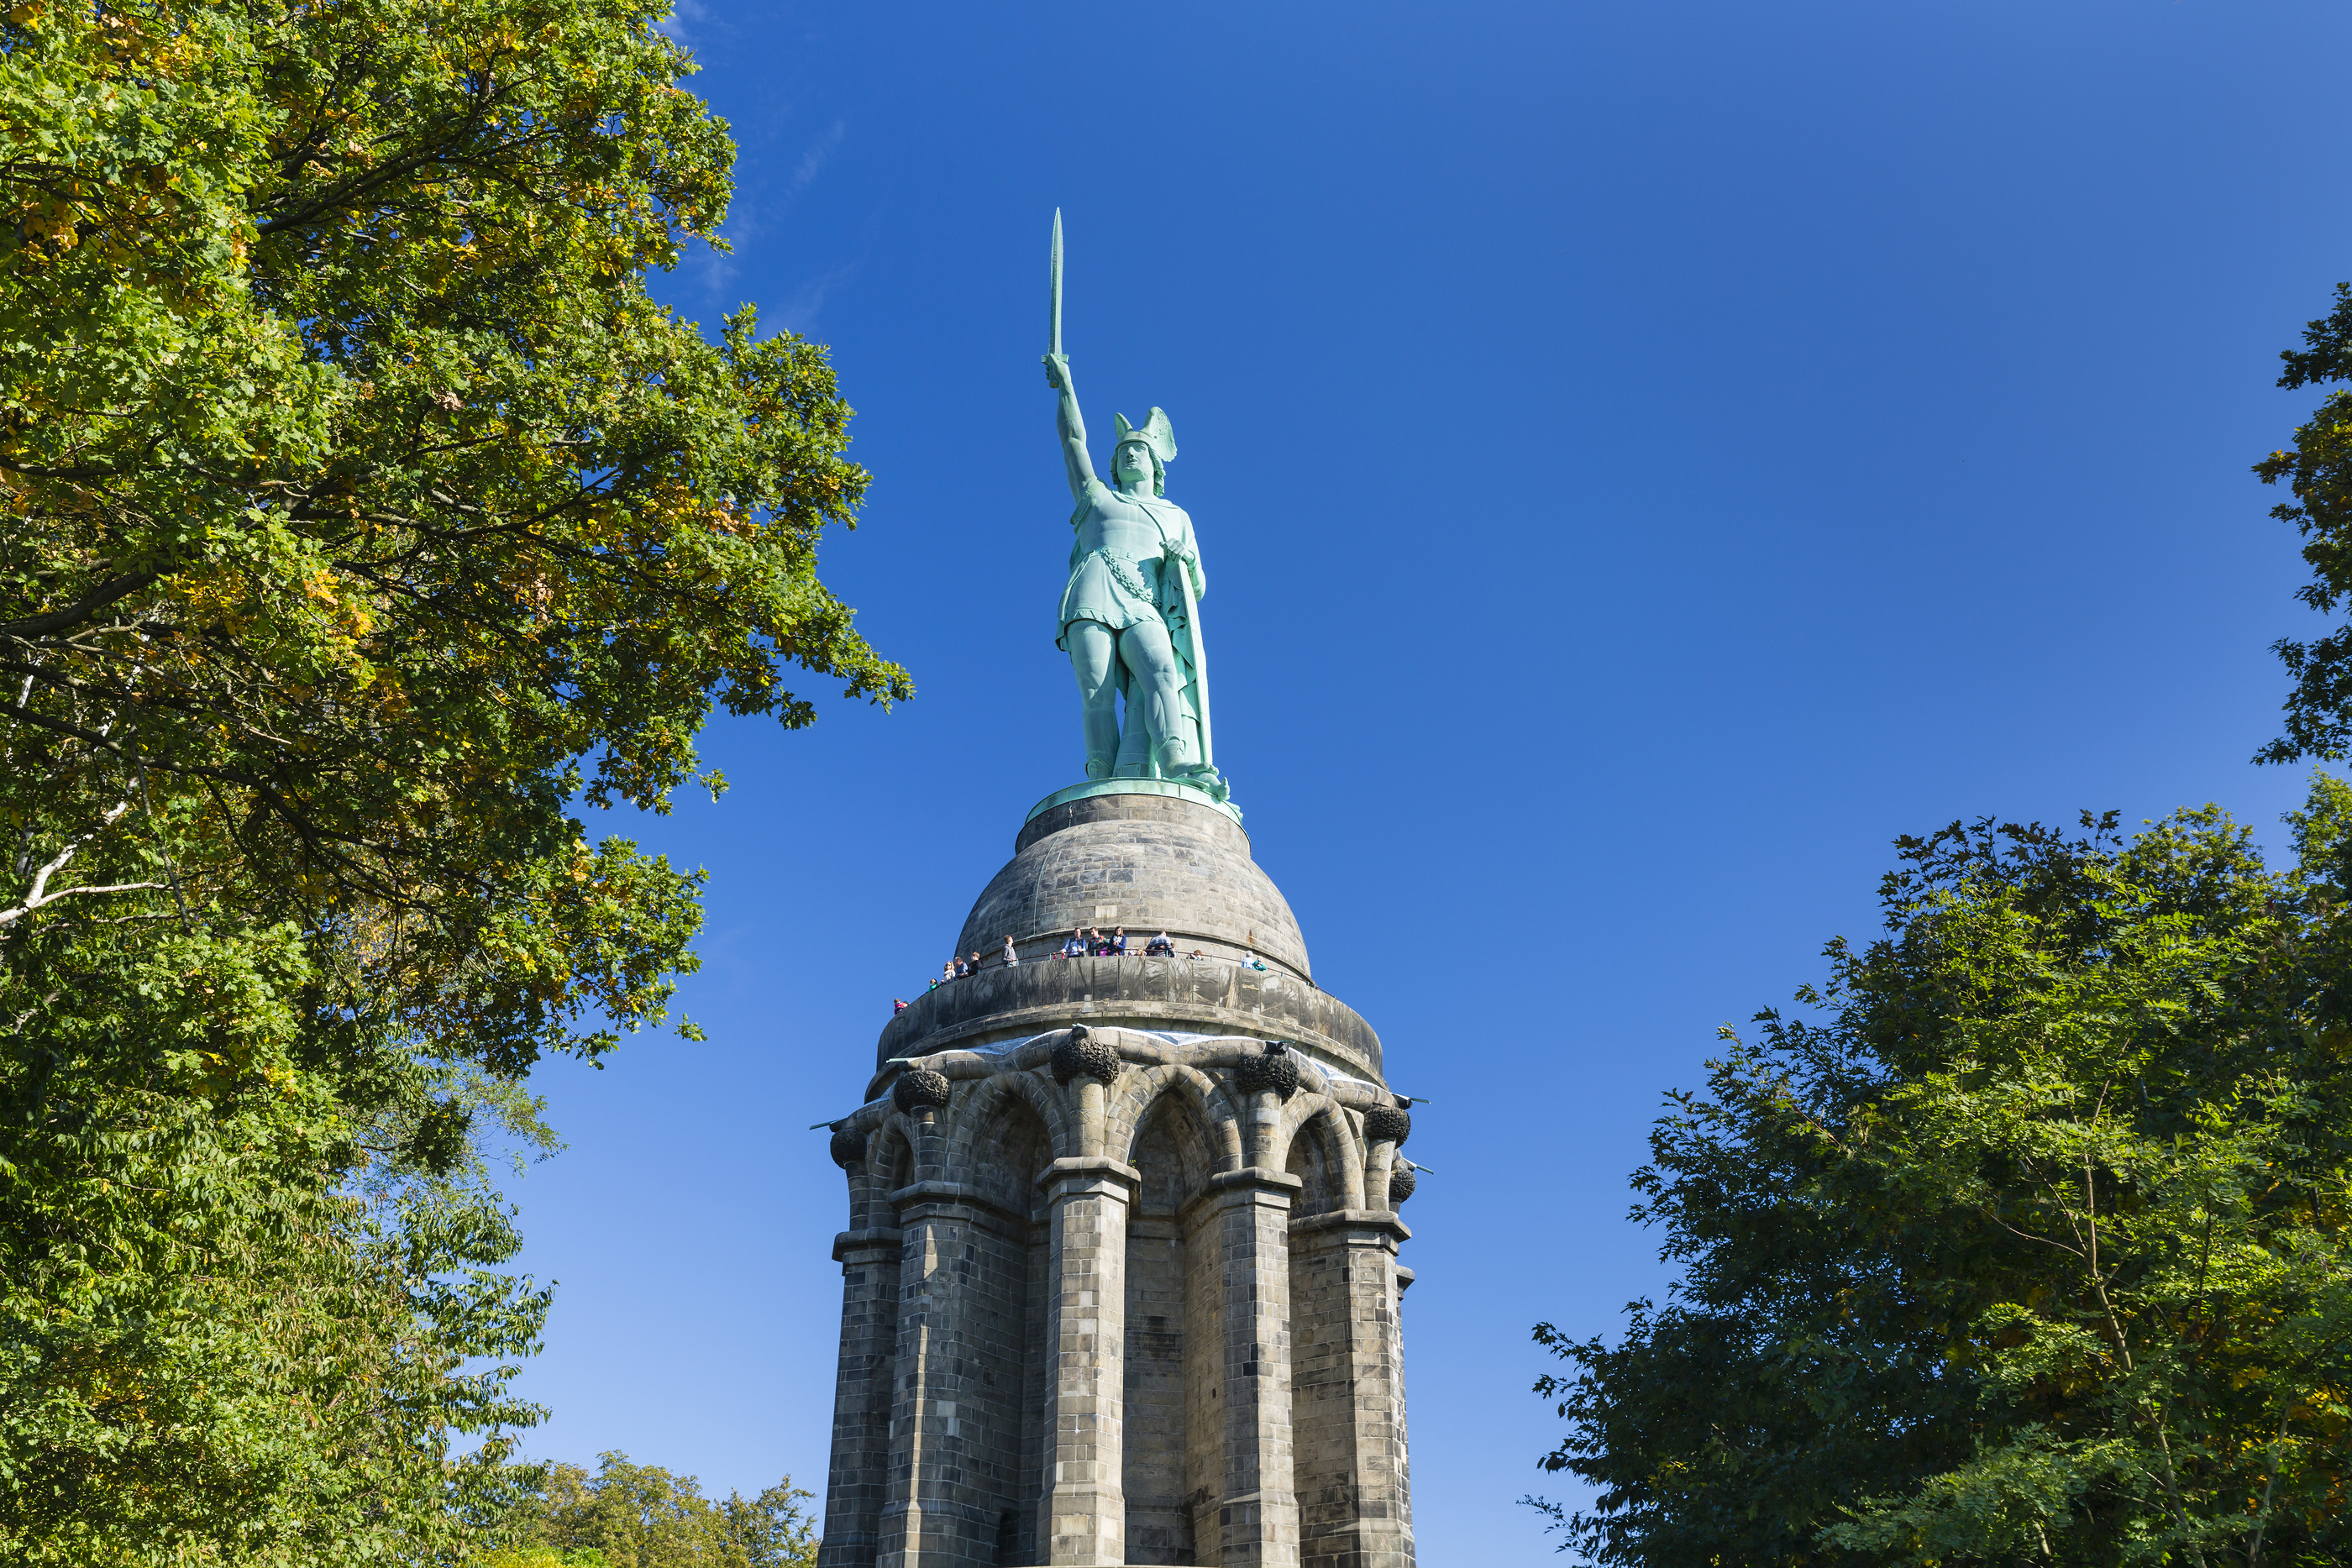 Hermannsdenkmal In Detmold, Germany